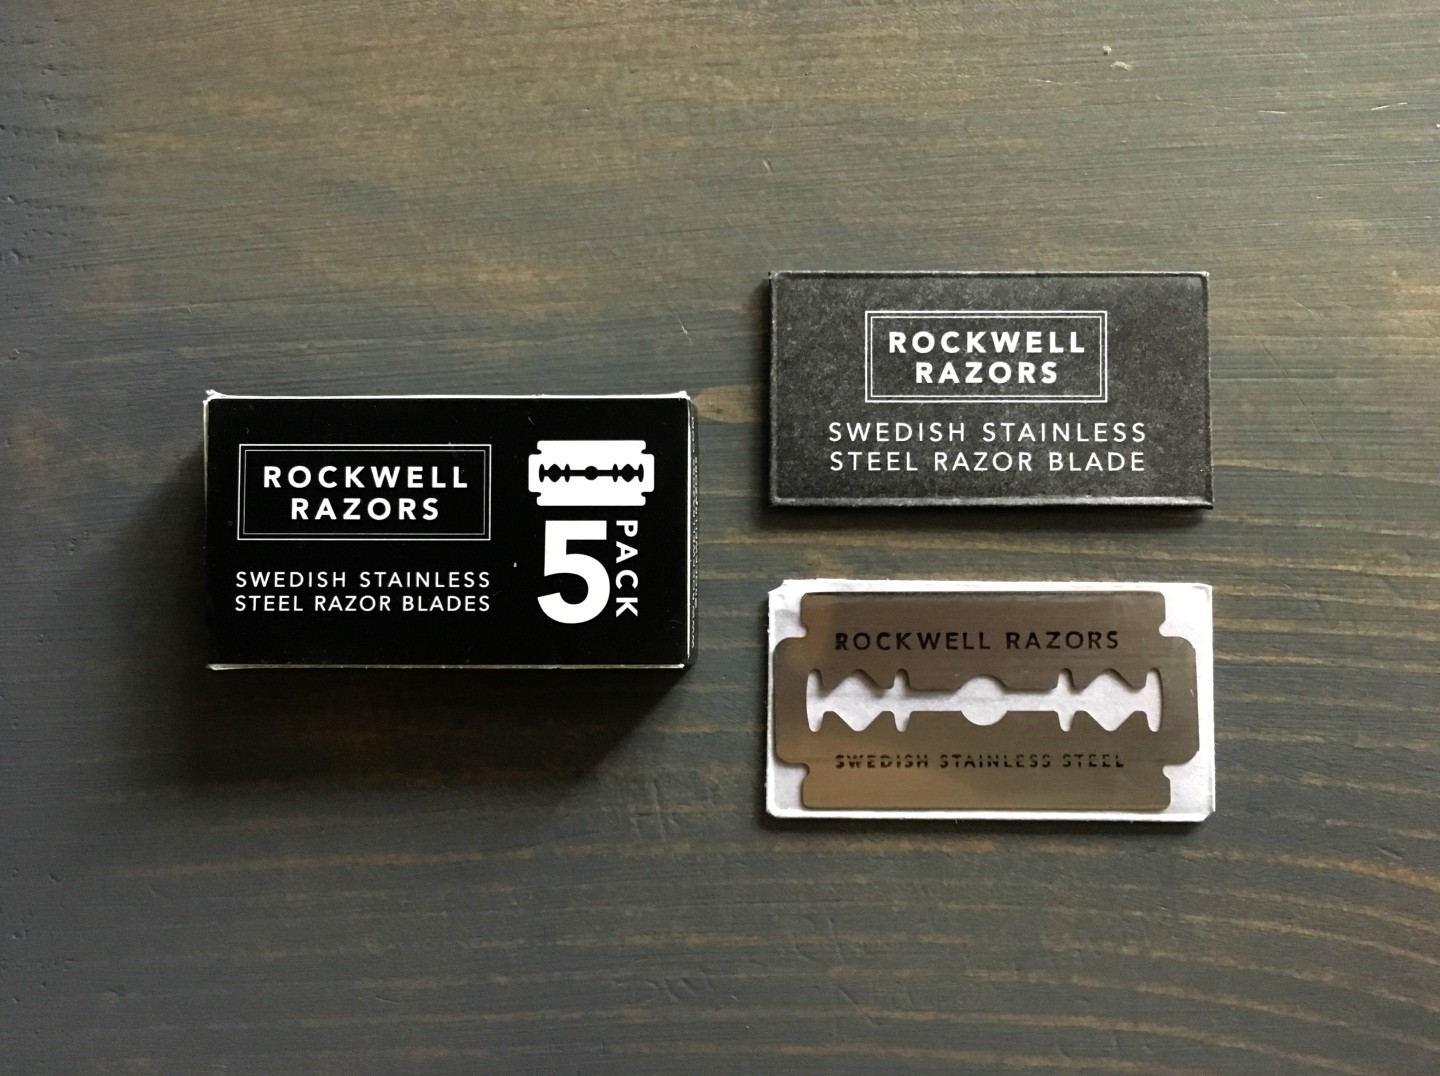 Rockwell Razors Stainless Steel Razor Blade Review